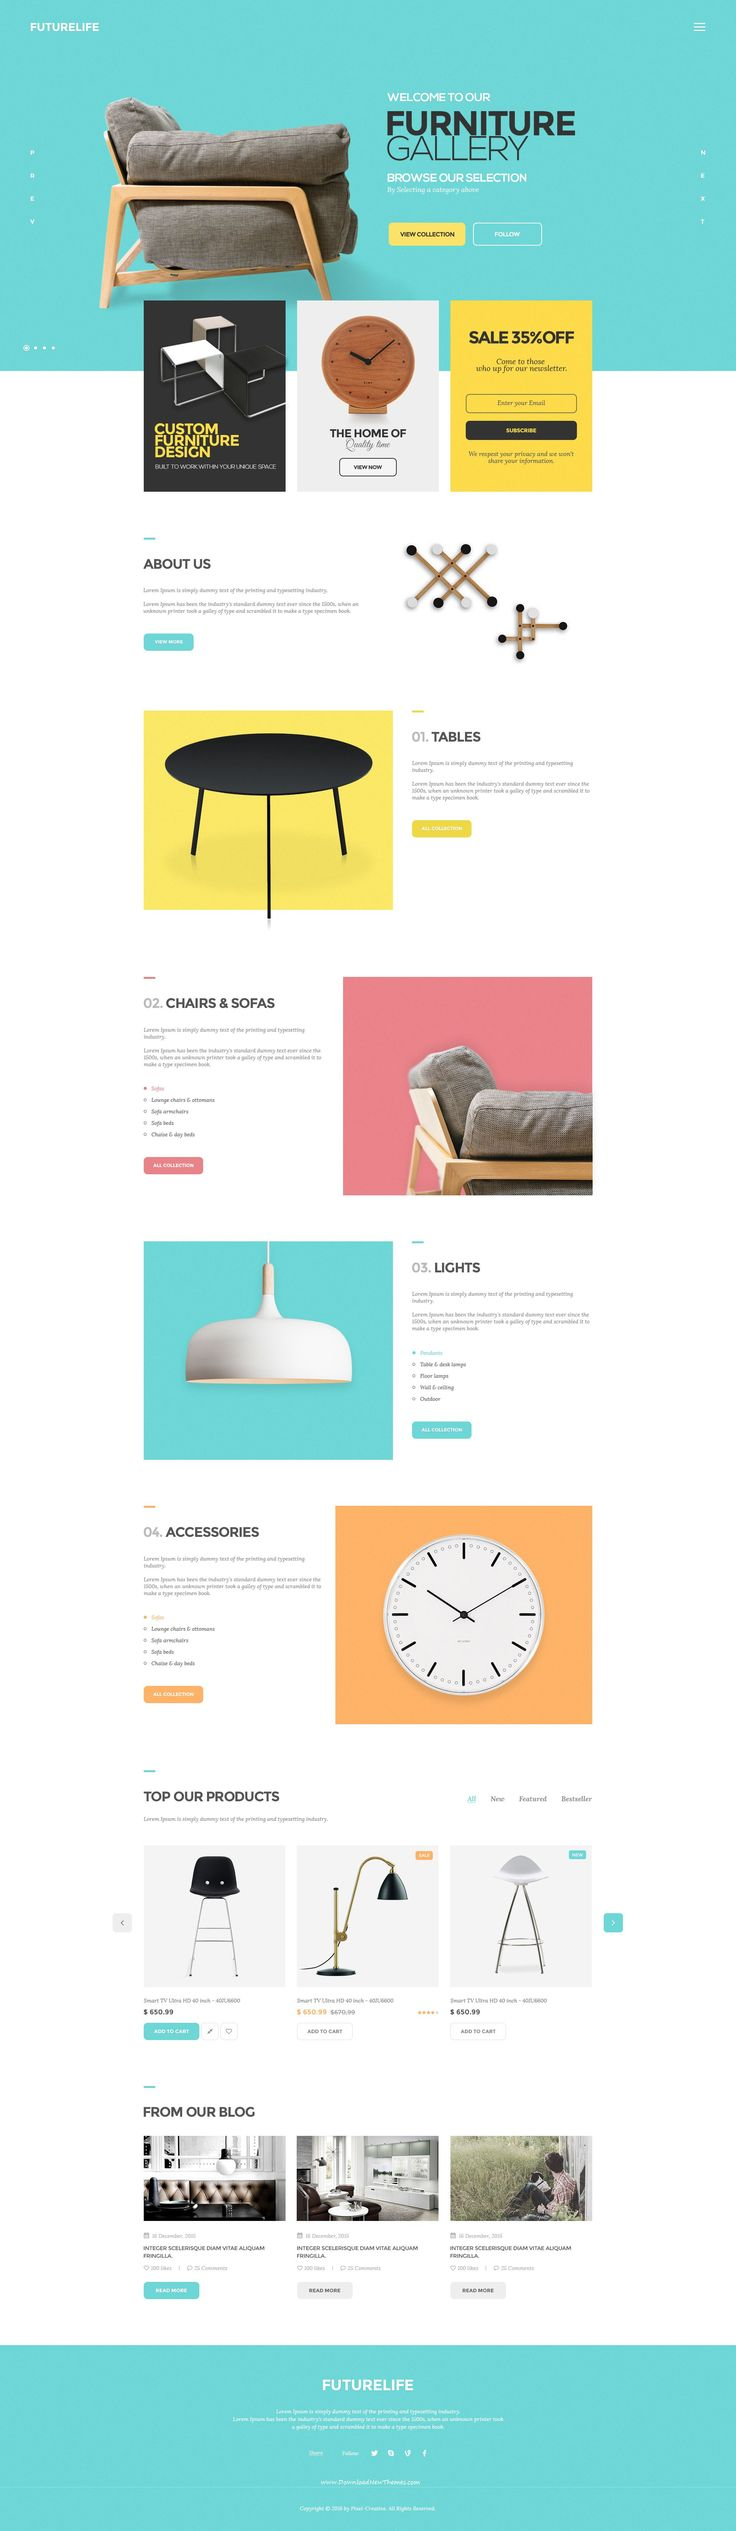 Excellent 1 Week Calendar Template Tall 1 Year Experience Java Resume Format Solid 1 Year Experienced Software Developer Resume Sample 1.5 Inch Hexagon Template Young 10 Steps To Creating A Resume Yellow100 Free Resume Builder 25  Best Ideas About Website Template On Pinterest | Business ..